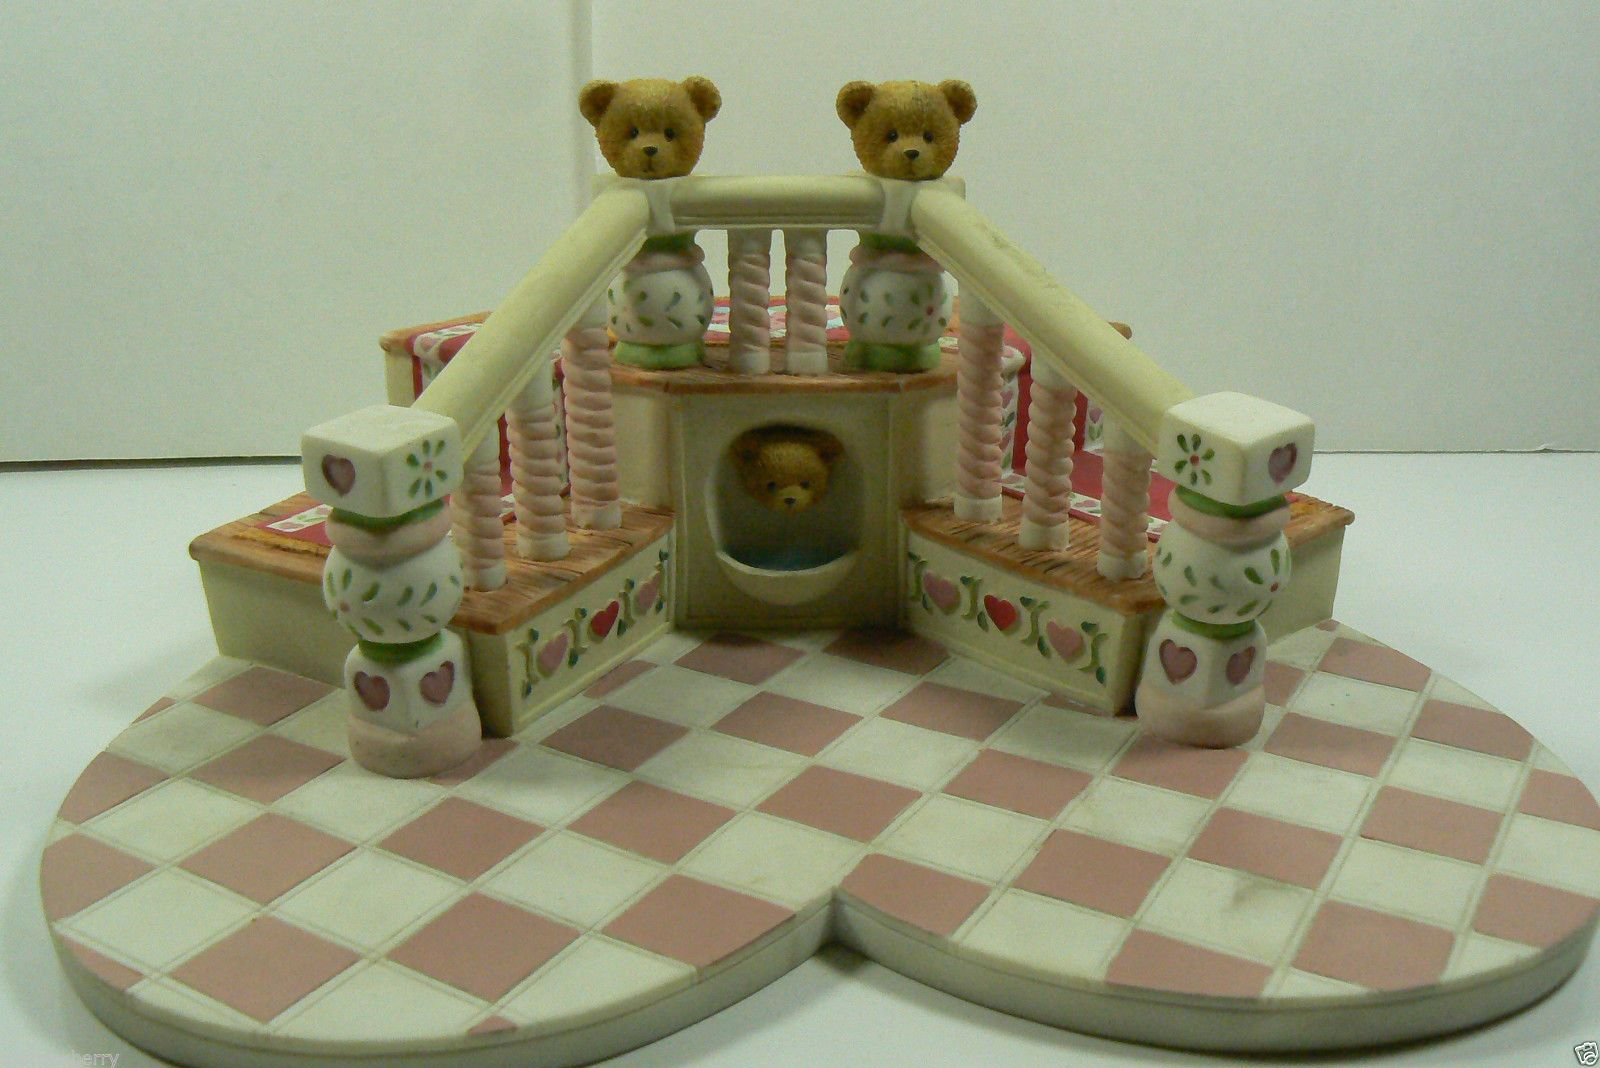 Won't you be my little Teddy Bear for Valentines Day.Enesco 1995 Cherished Teddies Bears Sweetheart Ball Display Stand P Hilman | eBay Gifts